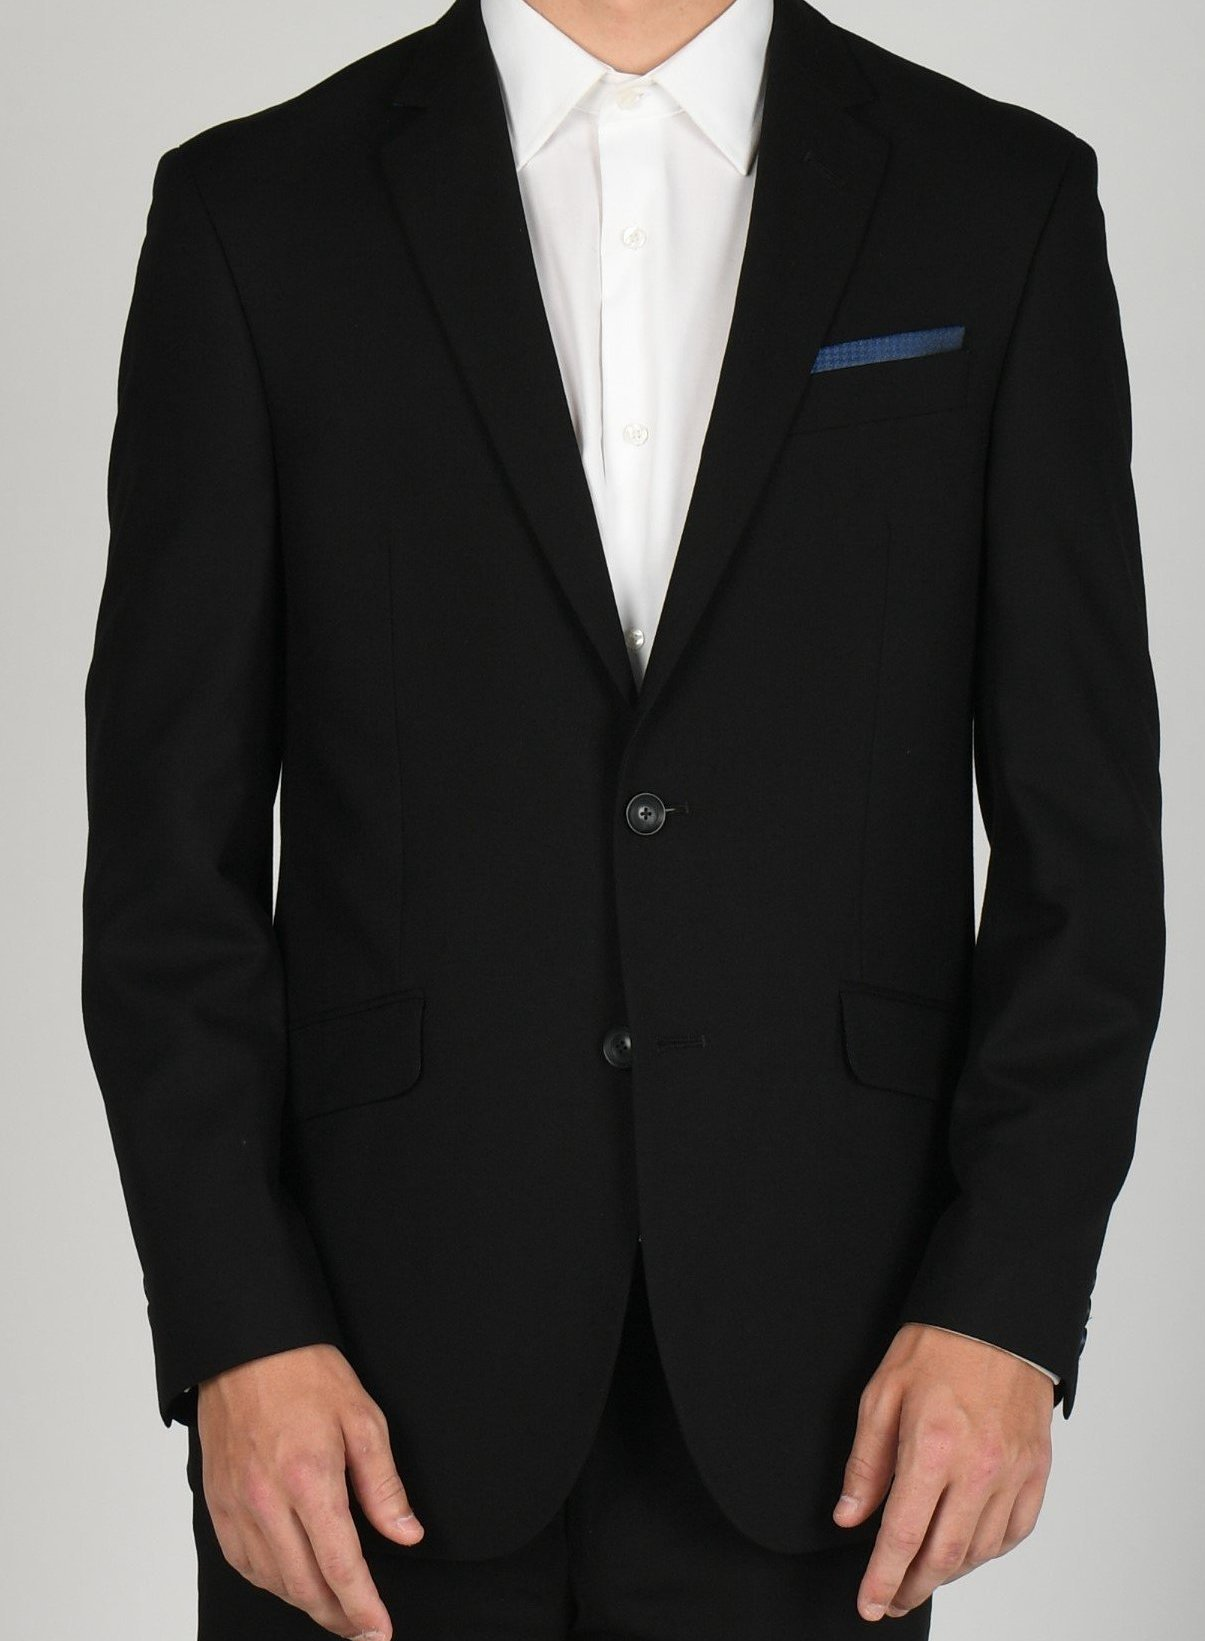 Dark Grey Double Breasted Suit 38/32 Clothing, Shoes & Accessories